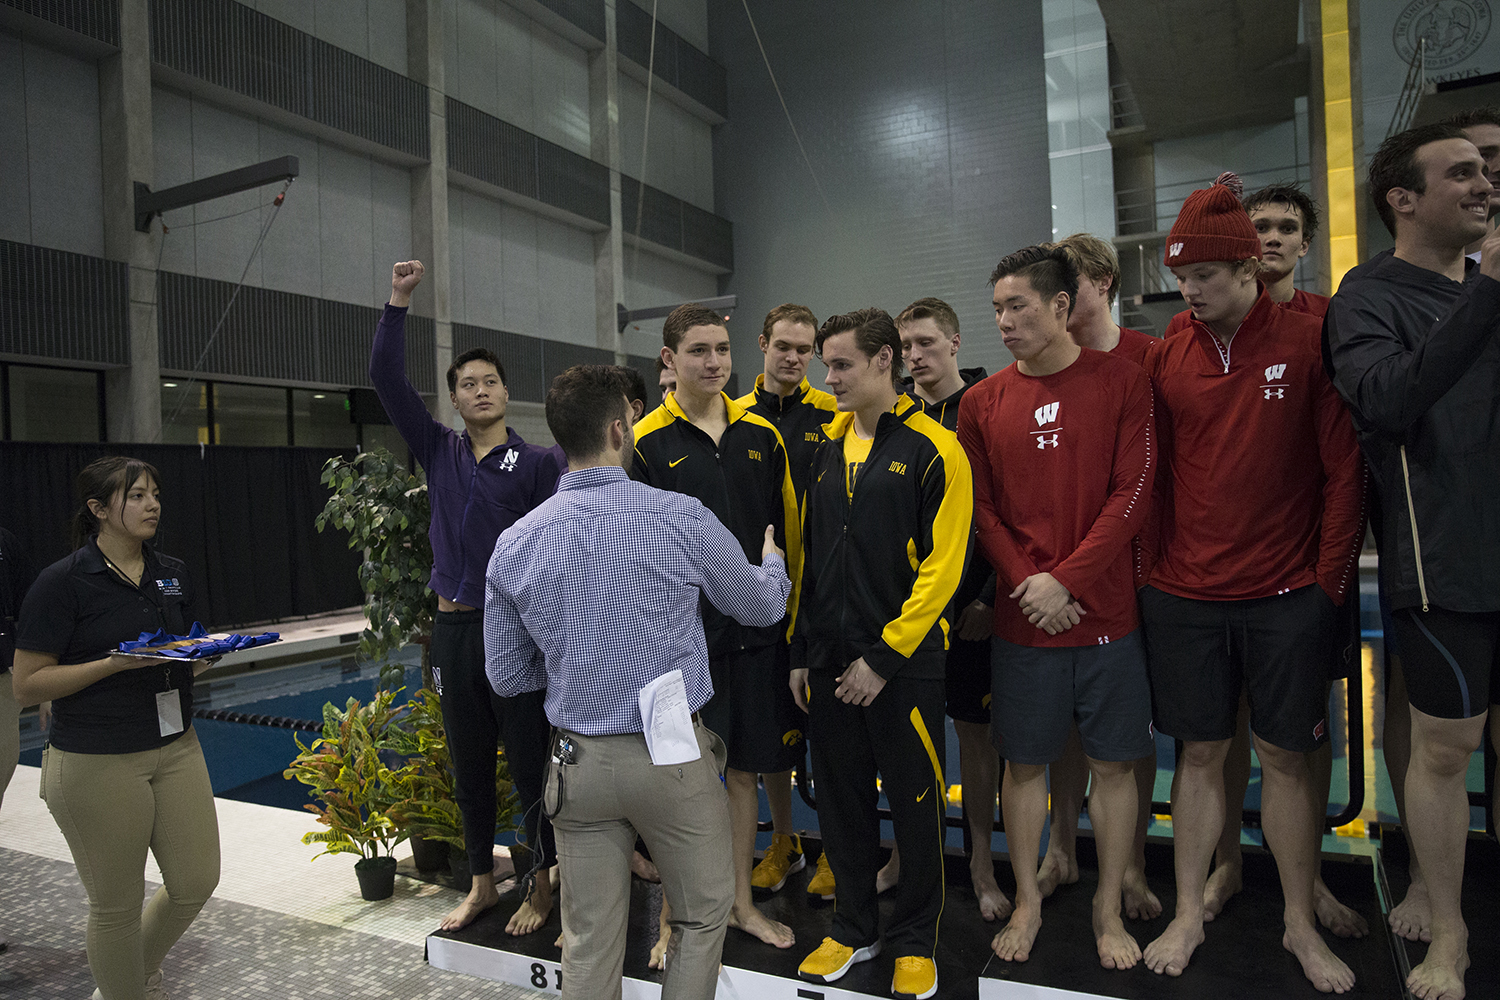 Kenneth+Mende%2C+Daniel+Swanepoel%2C+Michael+Tenney%2C+and+Joseph+Myhre+receiving+recognition+for+Men%27s+400+Yard+Medley+Relay+on+Thursday%2C+February+28%2C+2019.+The+Big+Ten+Men%27s+Swimming+and+Diving+Championship+was+held+at+the+University+of+Iowa+Aquatic+Center.+